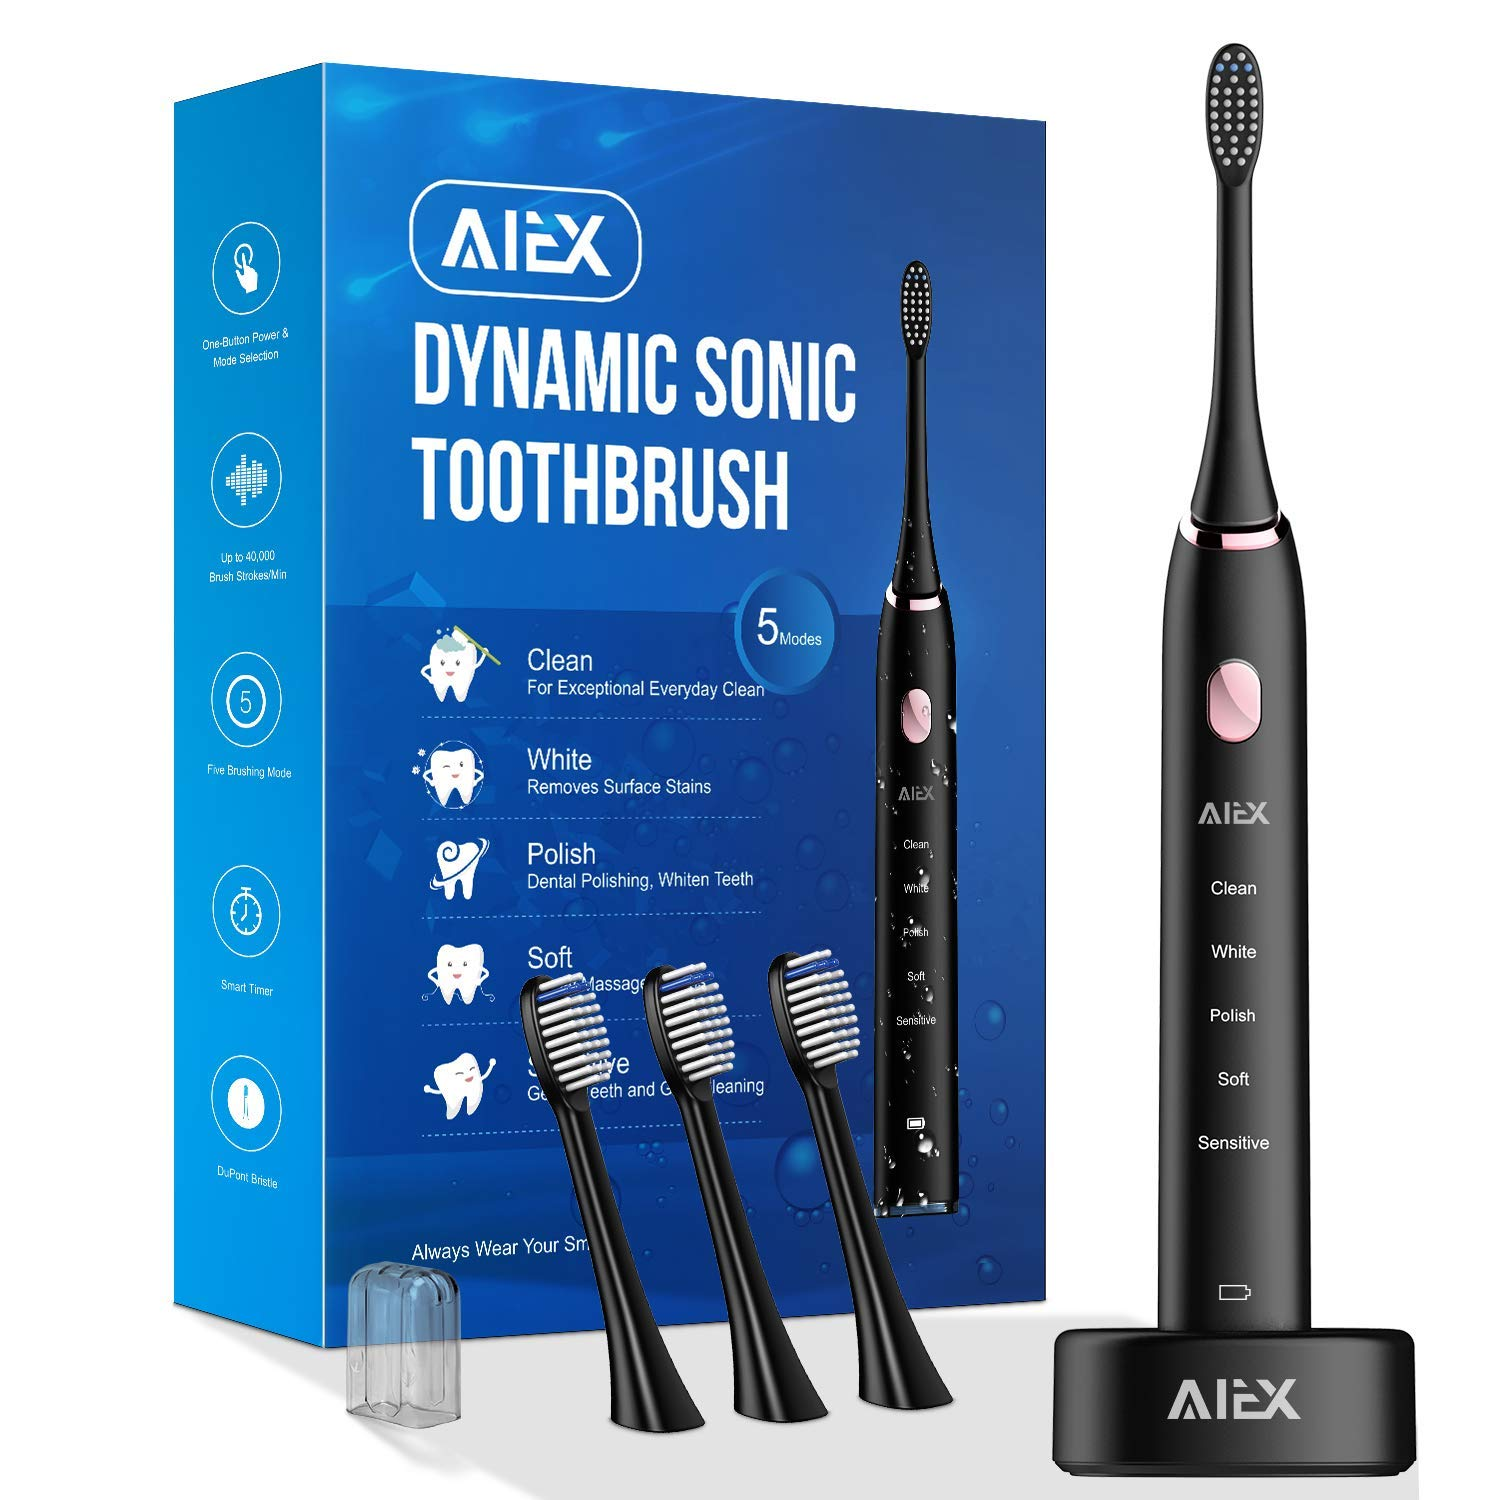 AIEX Sonic Electric Toothbrush with 3 Replacement Heads Rechargeable Electronic Toothbrush with Holder Black Travel Toothbrush with 5 Modes IPX7 Waterproof USB Wireless Charging Smart Timer Travel Bag